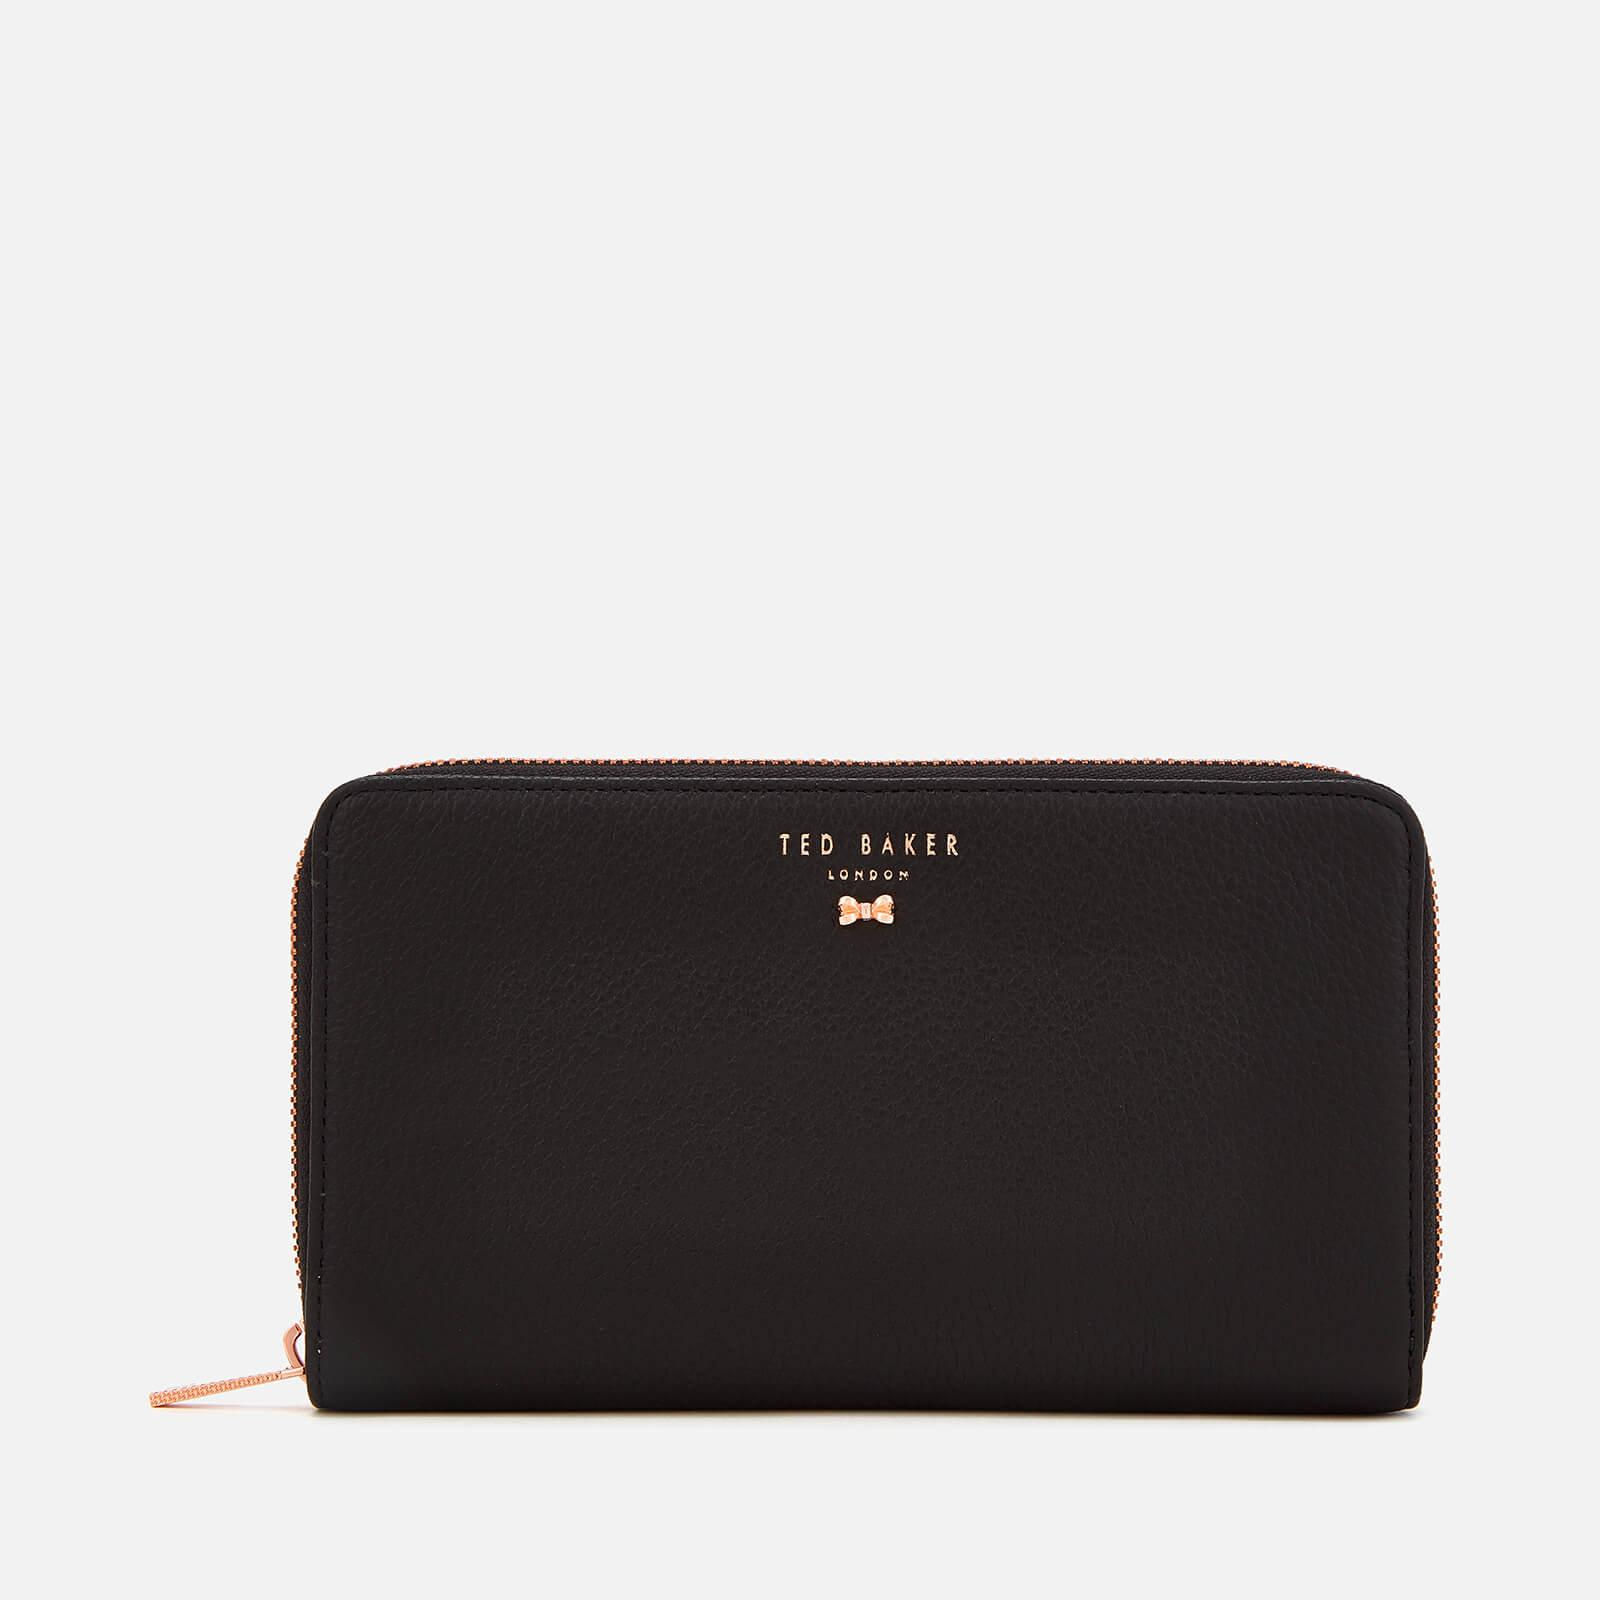 Textured Leather Small Zip Purse Ted Baker gKK6Wi